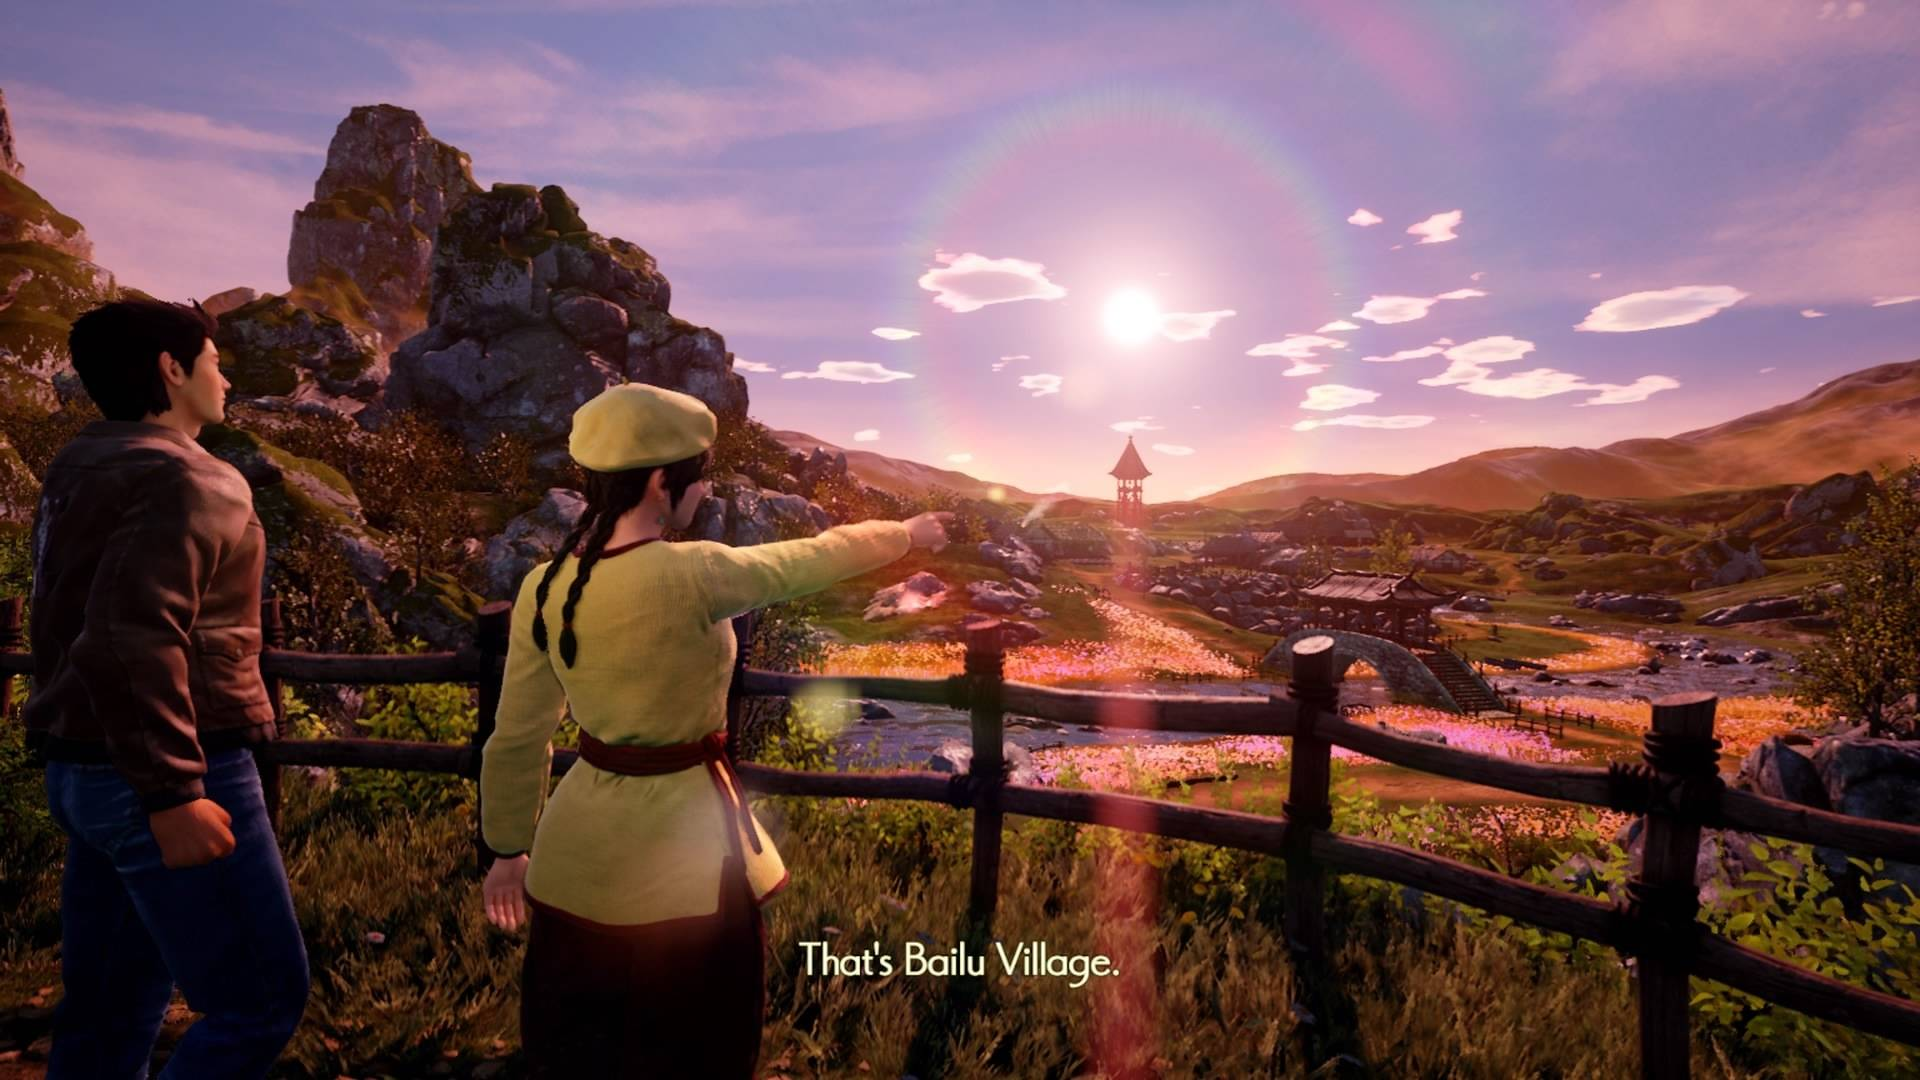 shenmue-3-deluxe-edition-pc-screenshot-03